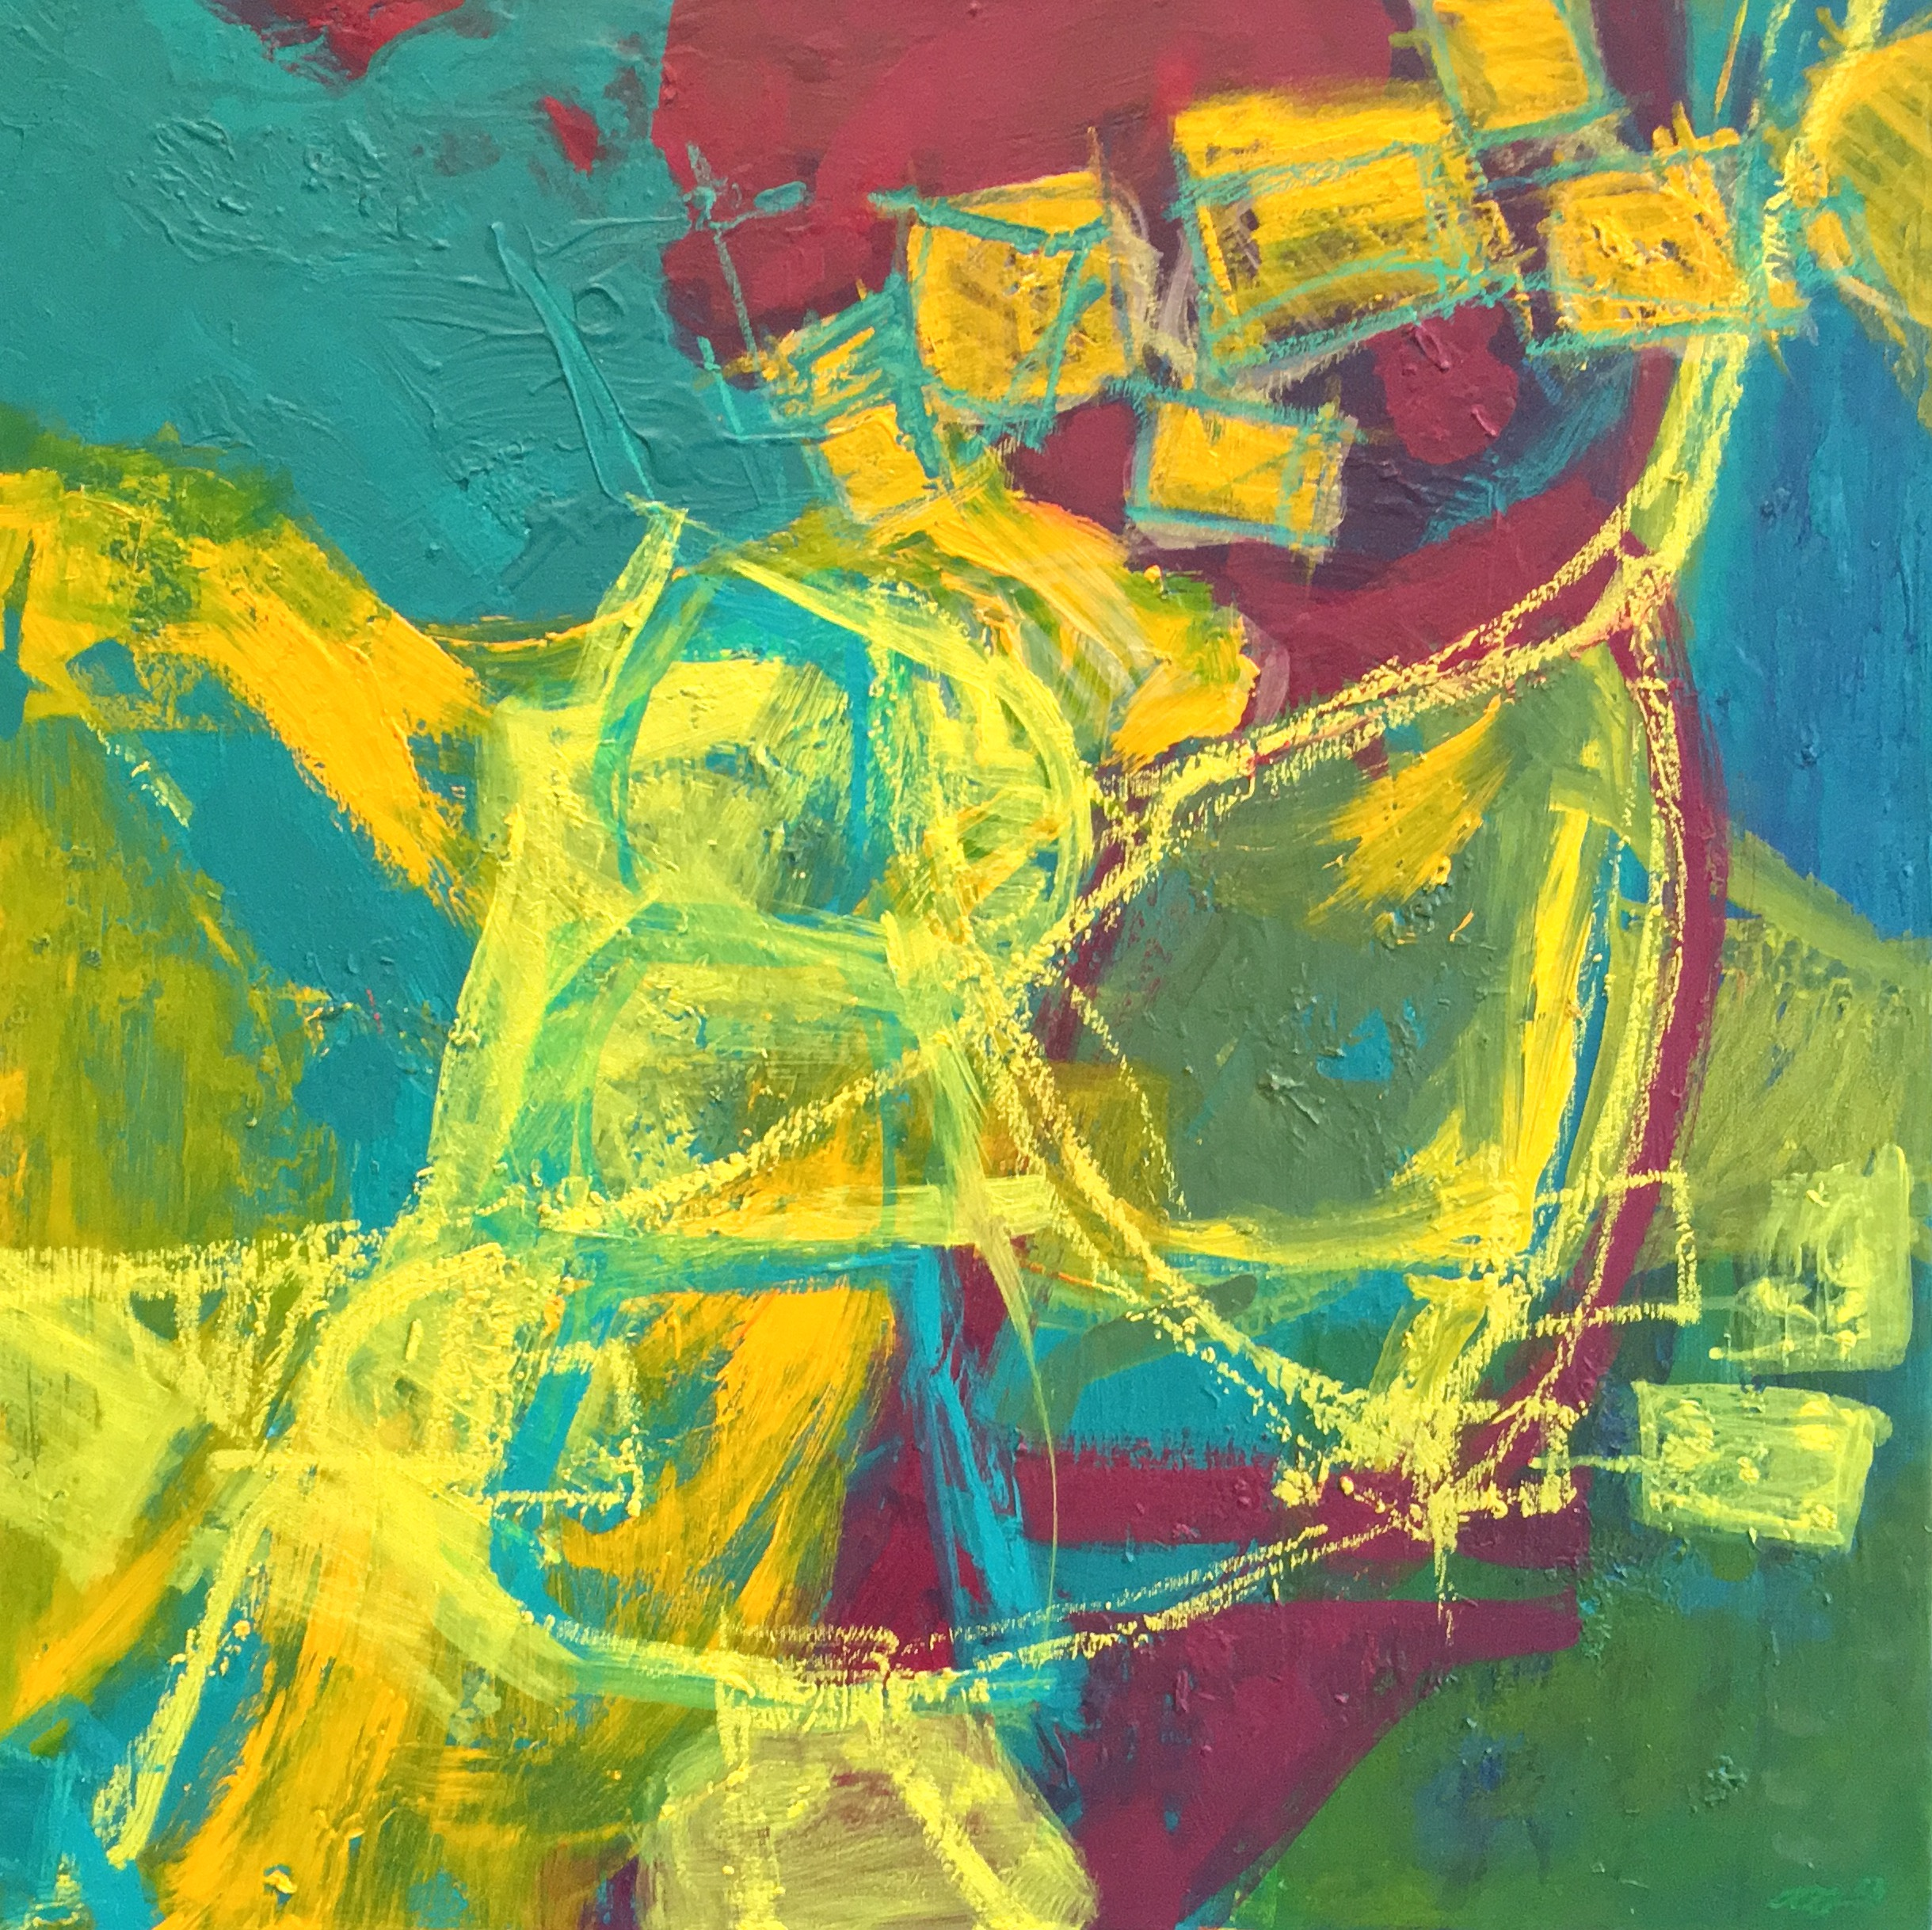 <b>Untitled#1 (Elegies)</b> <em>(SOLD)</em>